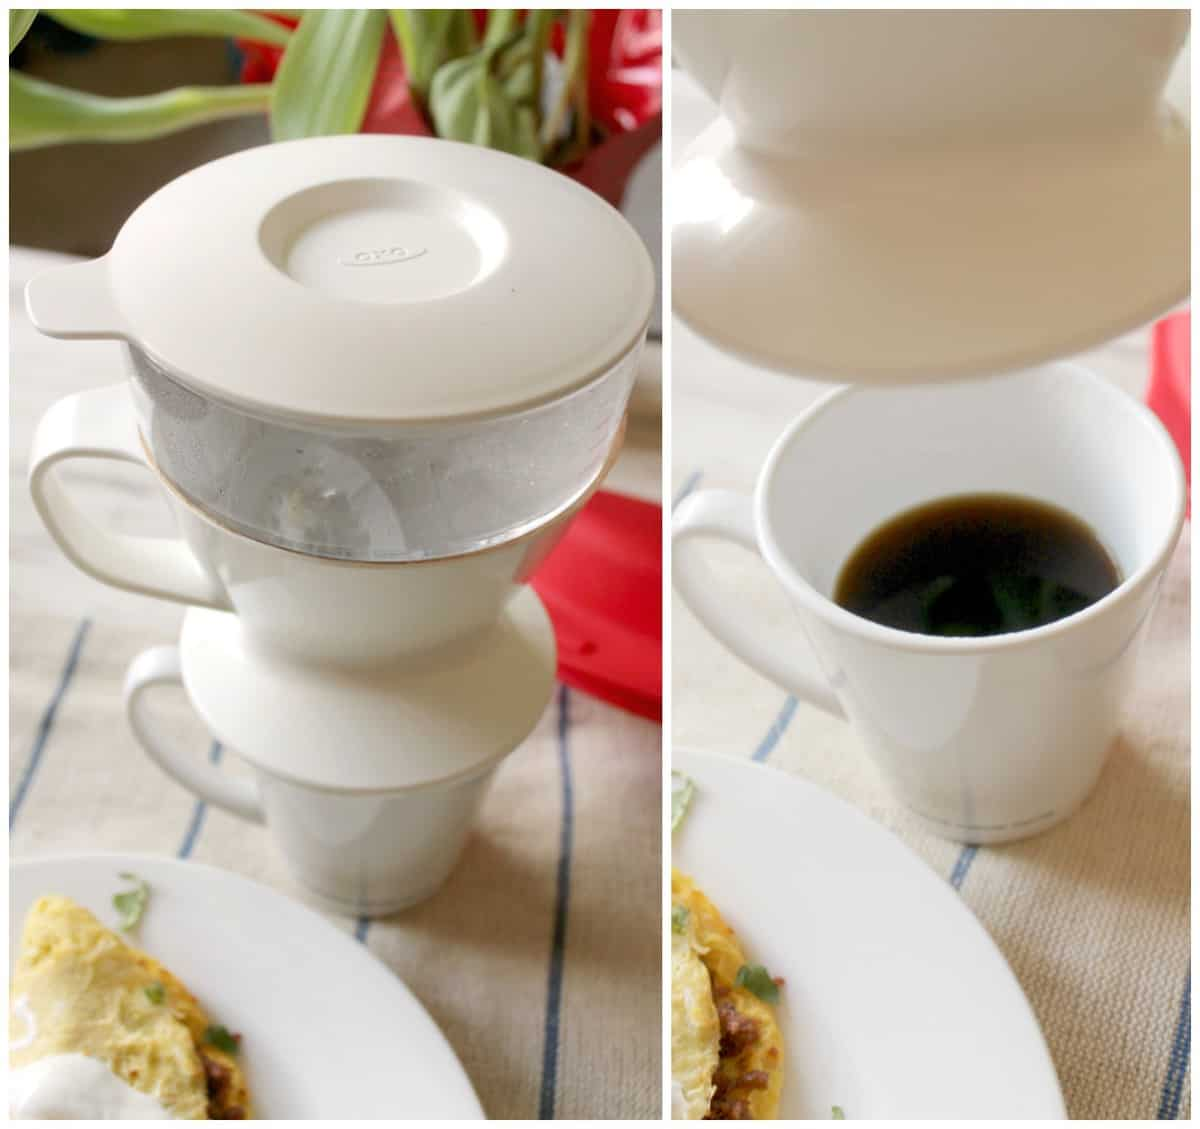 OXO Pour Over Coffee Maker